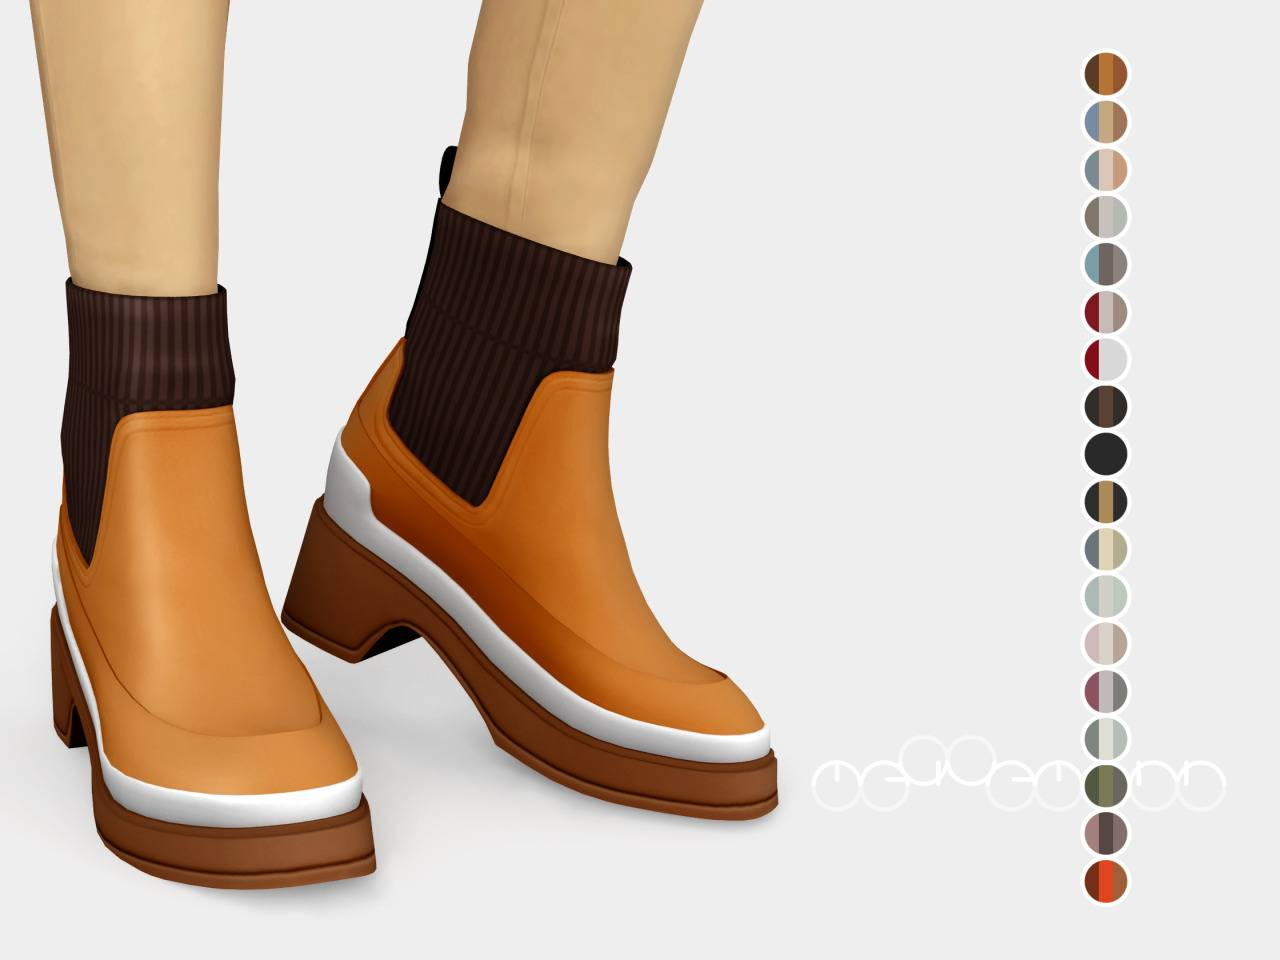 Ботинки - HERMES VADROUILLE ANKLE BOOTS